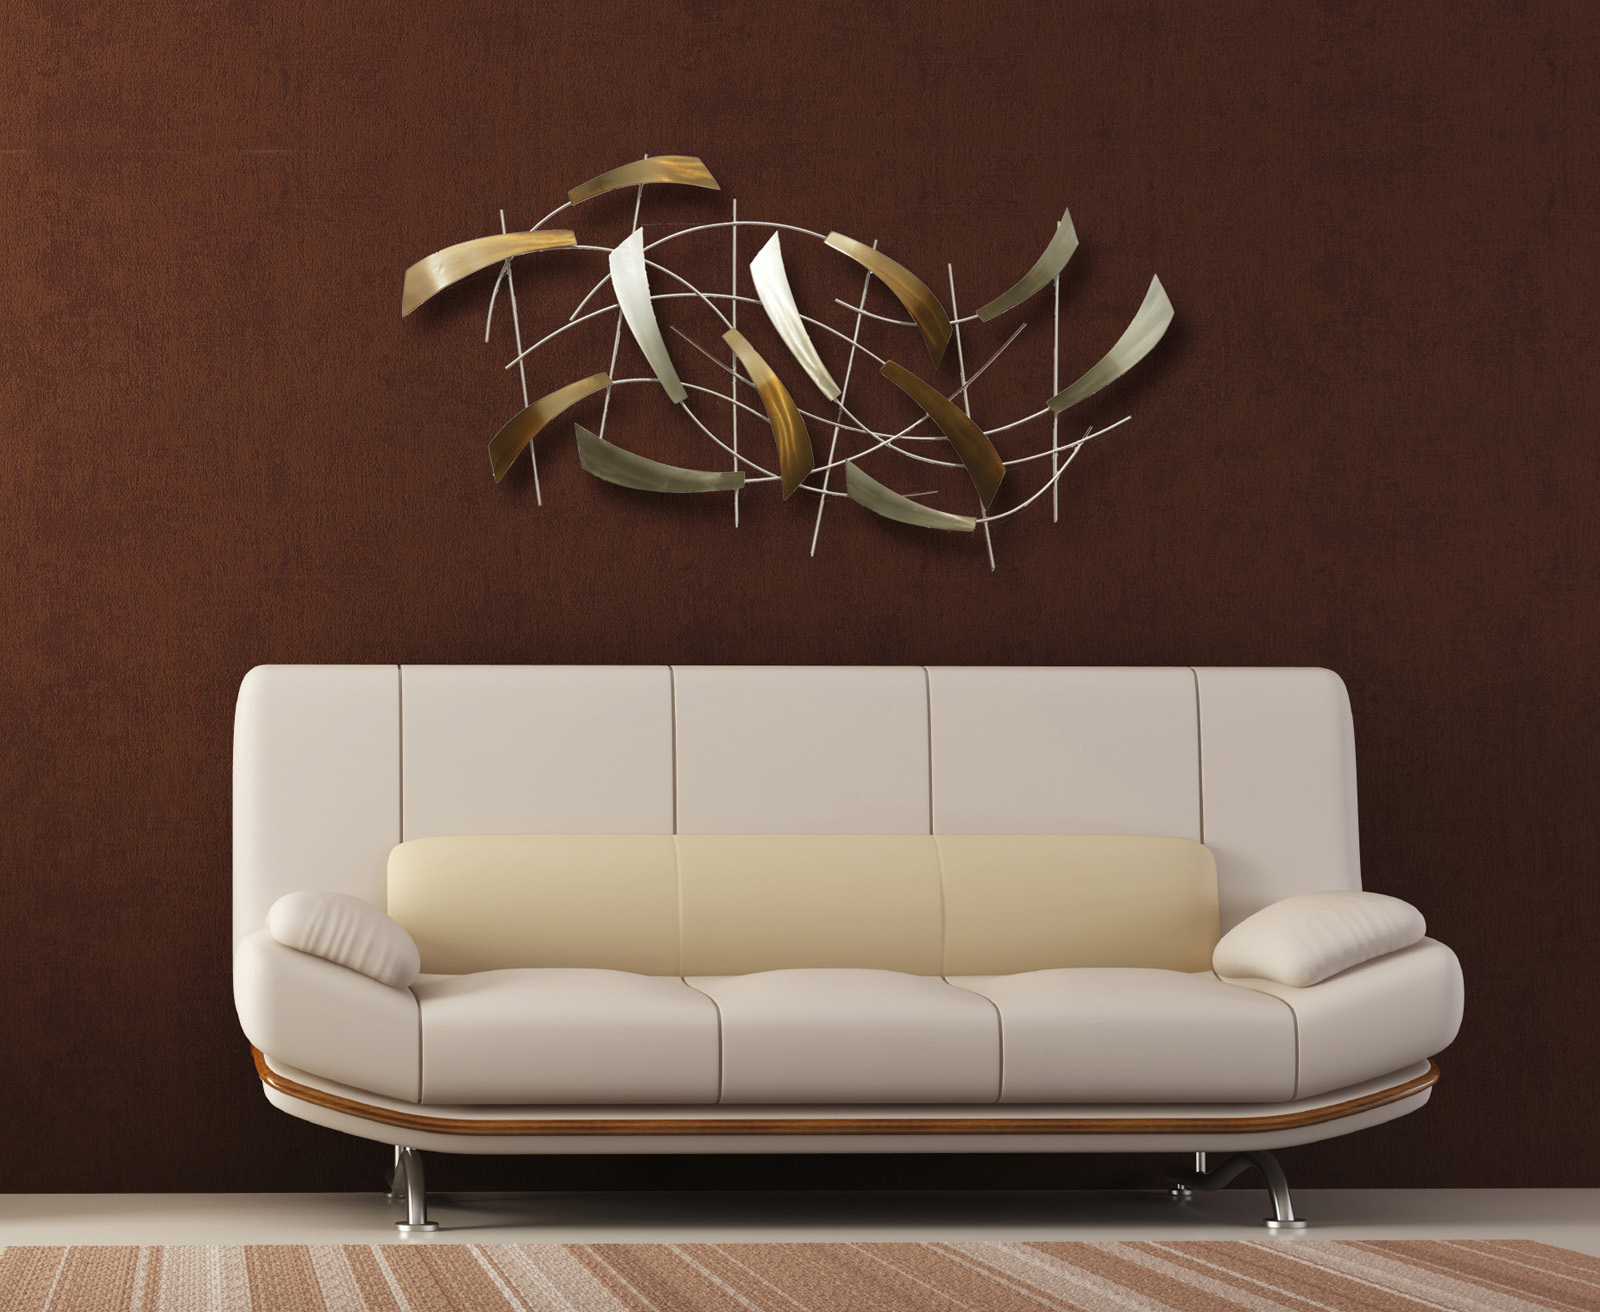 Interior Design Wall Decor Gift And Home Today New Contemporary Wall Designs Are